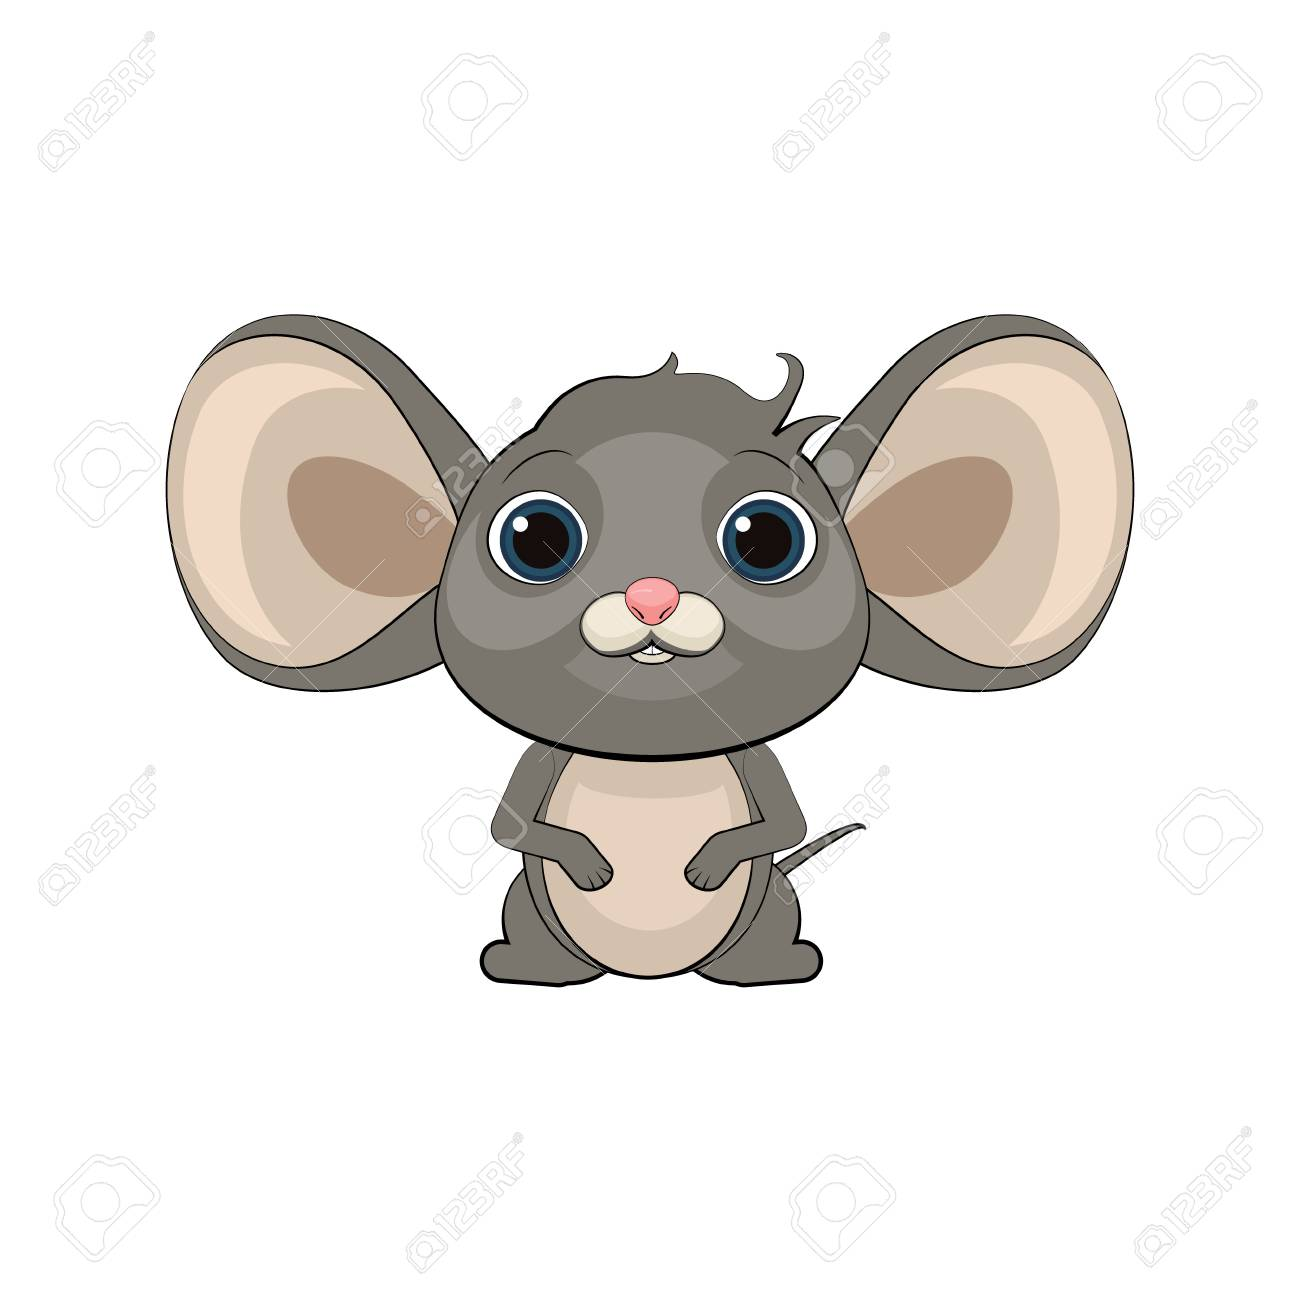 Cute Cartoon Mouse Vector Illustration. Royalty Free Cliparts